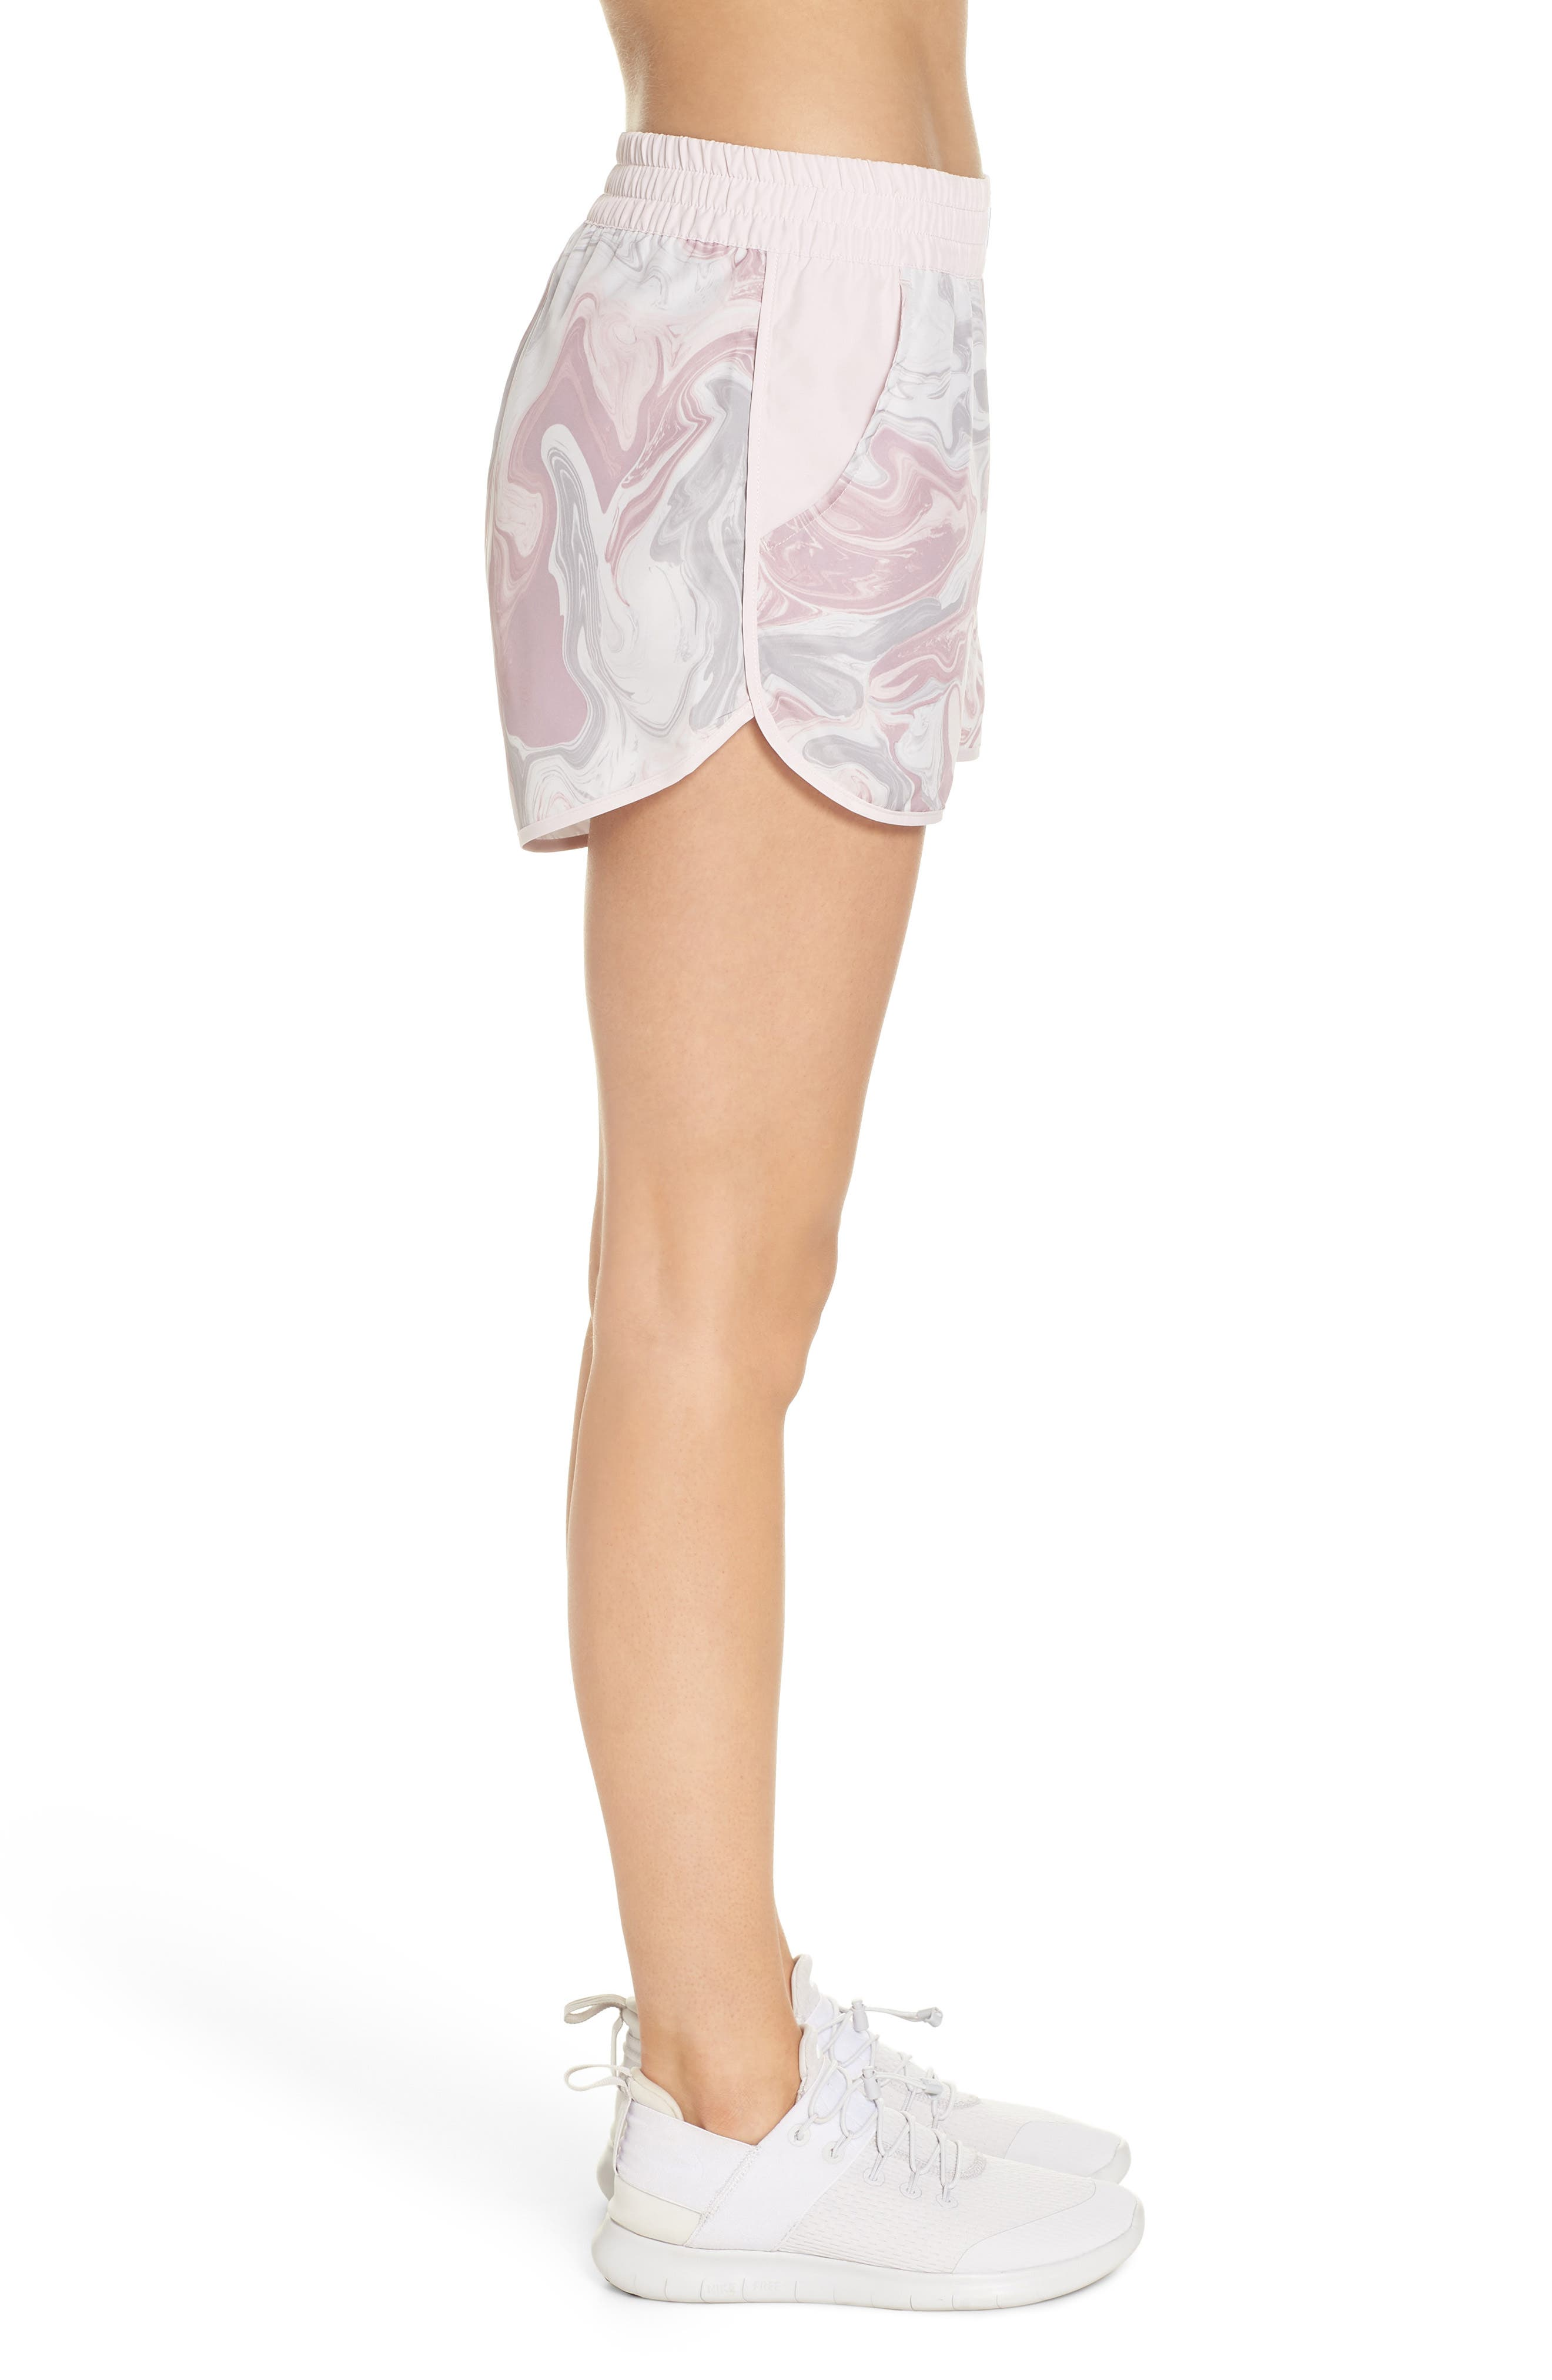 Sportswear Woven Shorts,                             Alternate thumbnail 3, color,                             ELEMENTAL ROSE/ BARELY ROSE